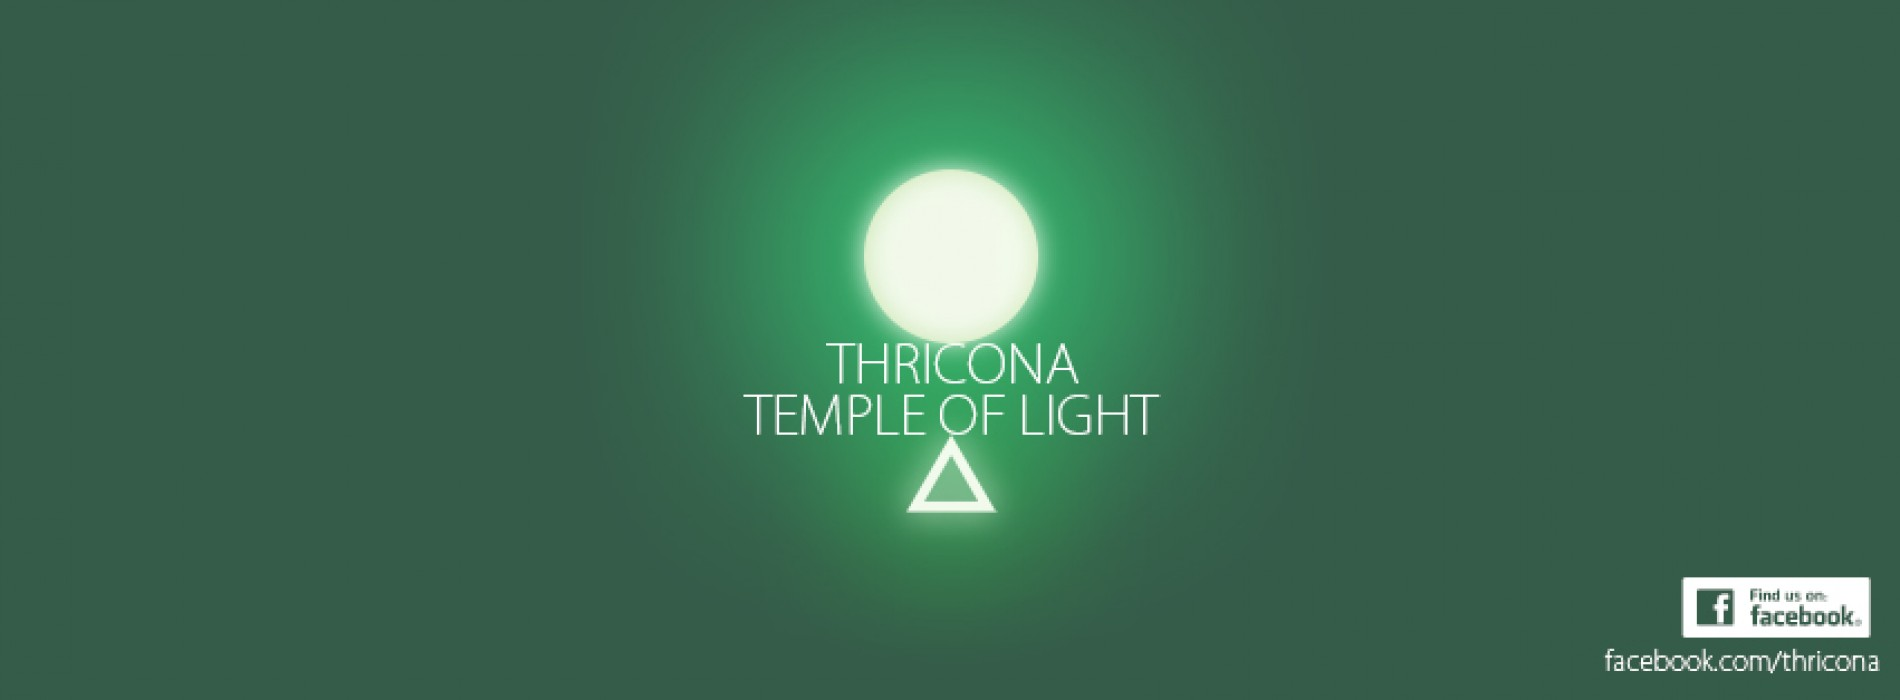 Thricona – Temple Of Light